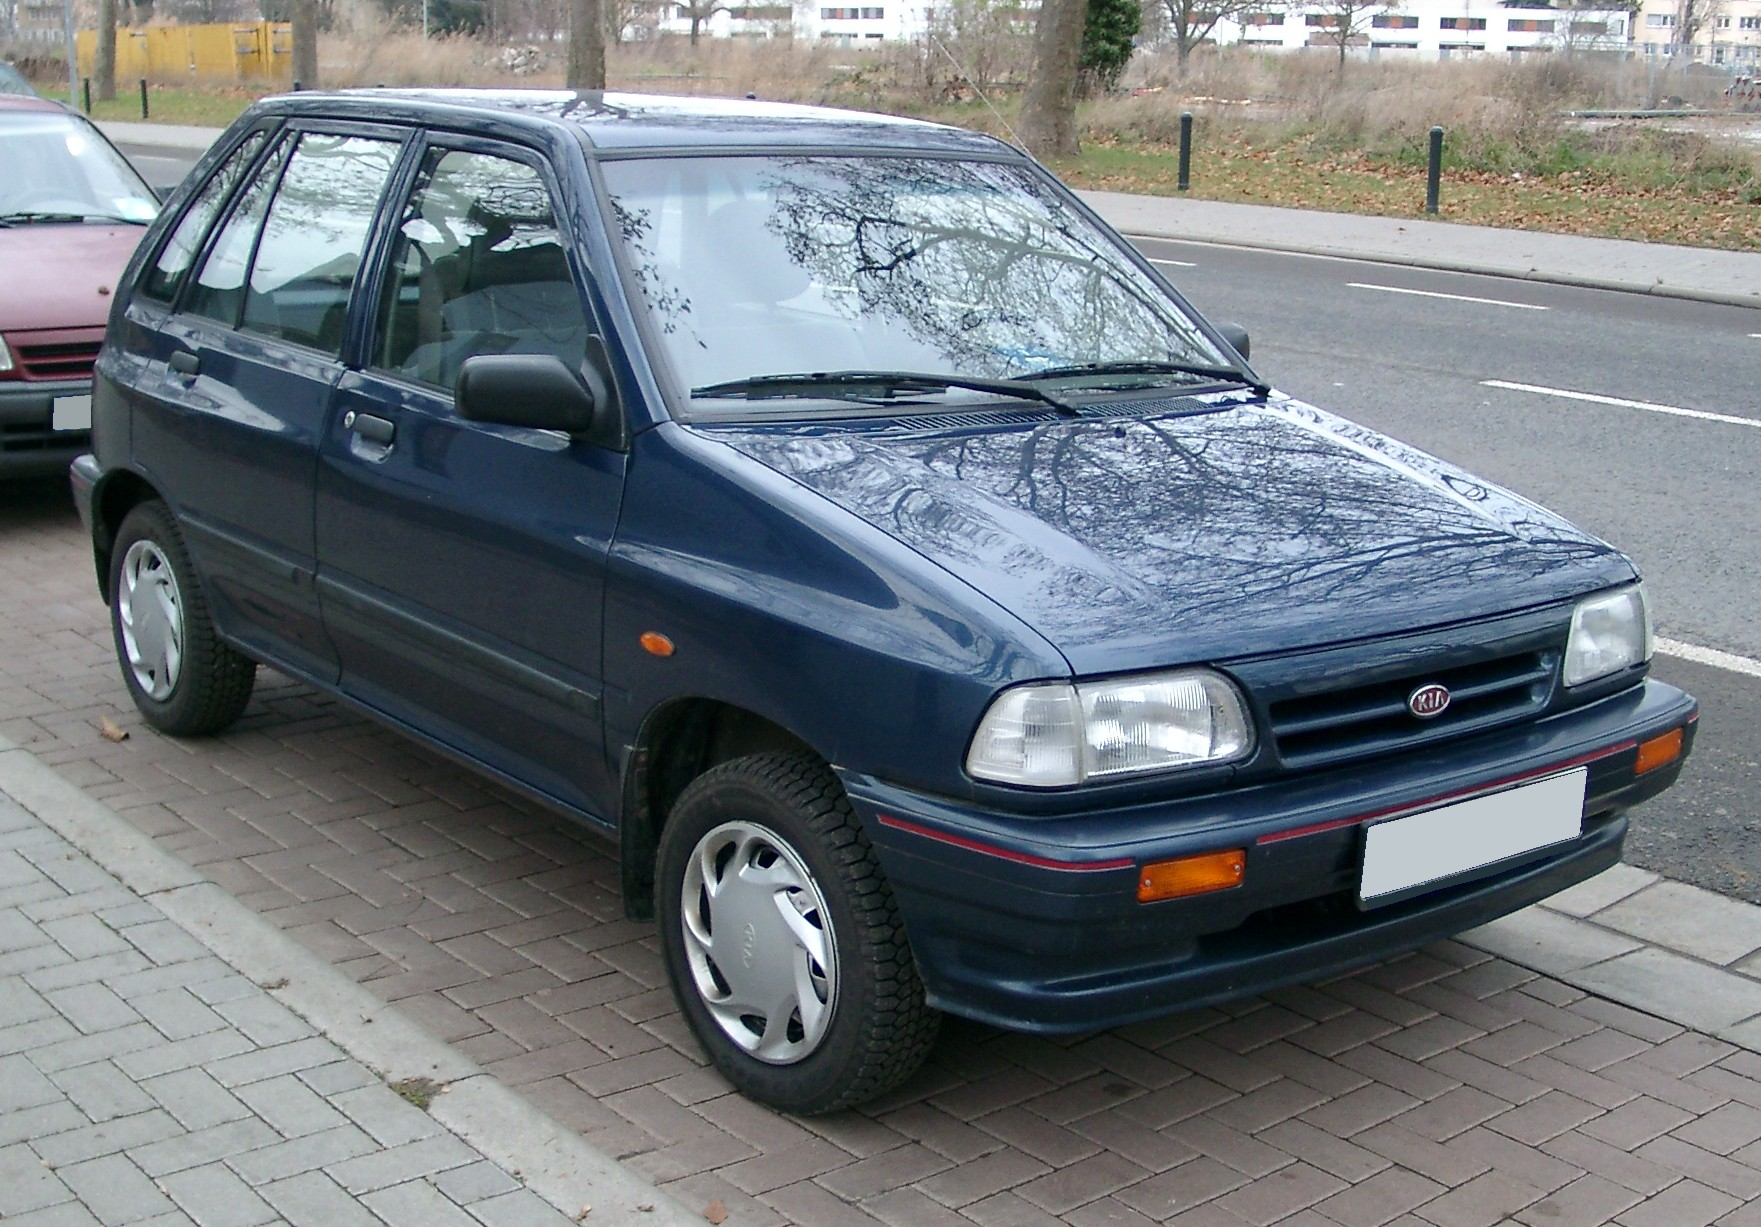 Cars Under 2000 >> File:Kia Pride front 20071204.jpg - Wikimedia Commons